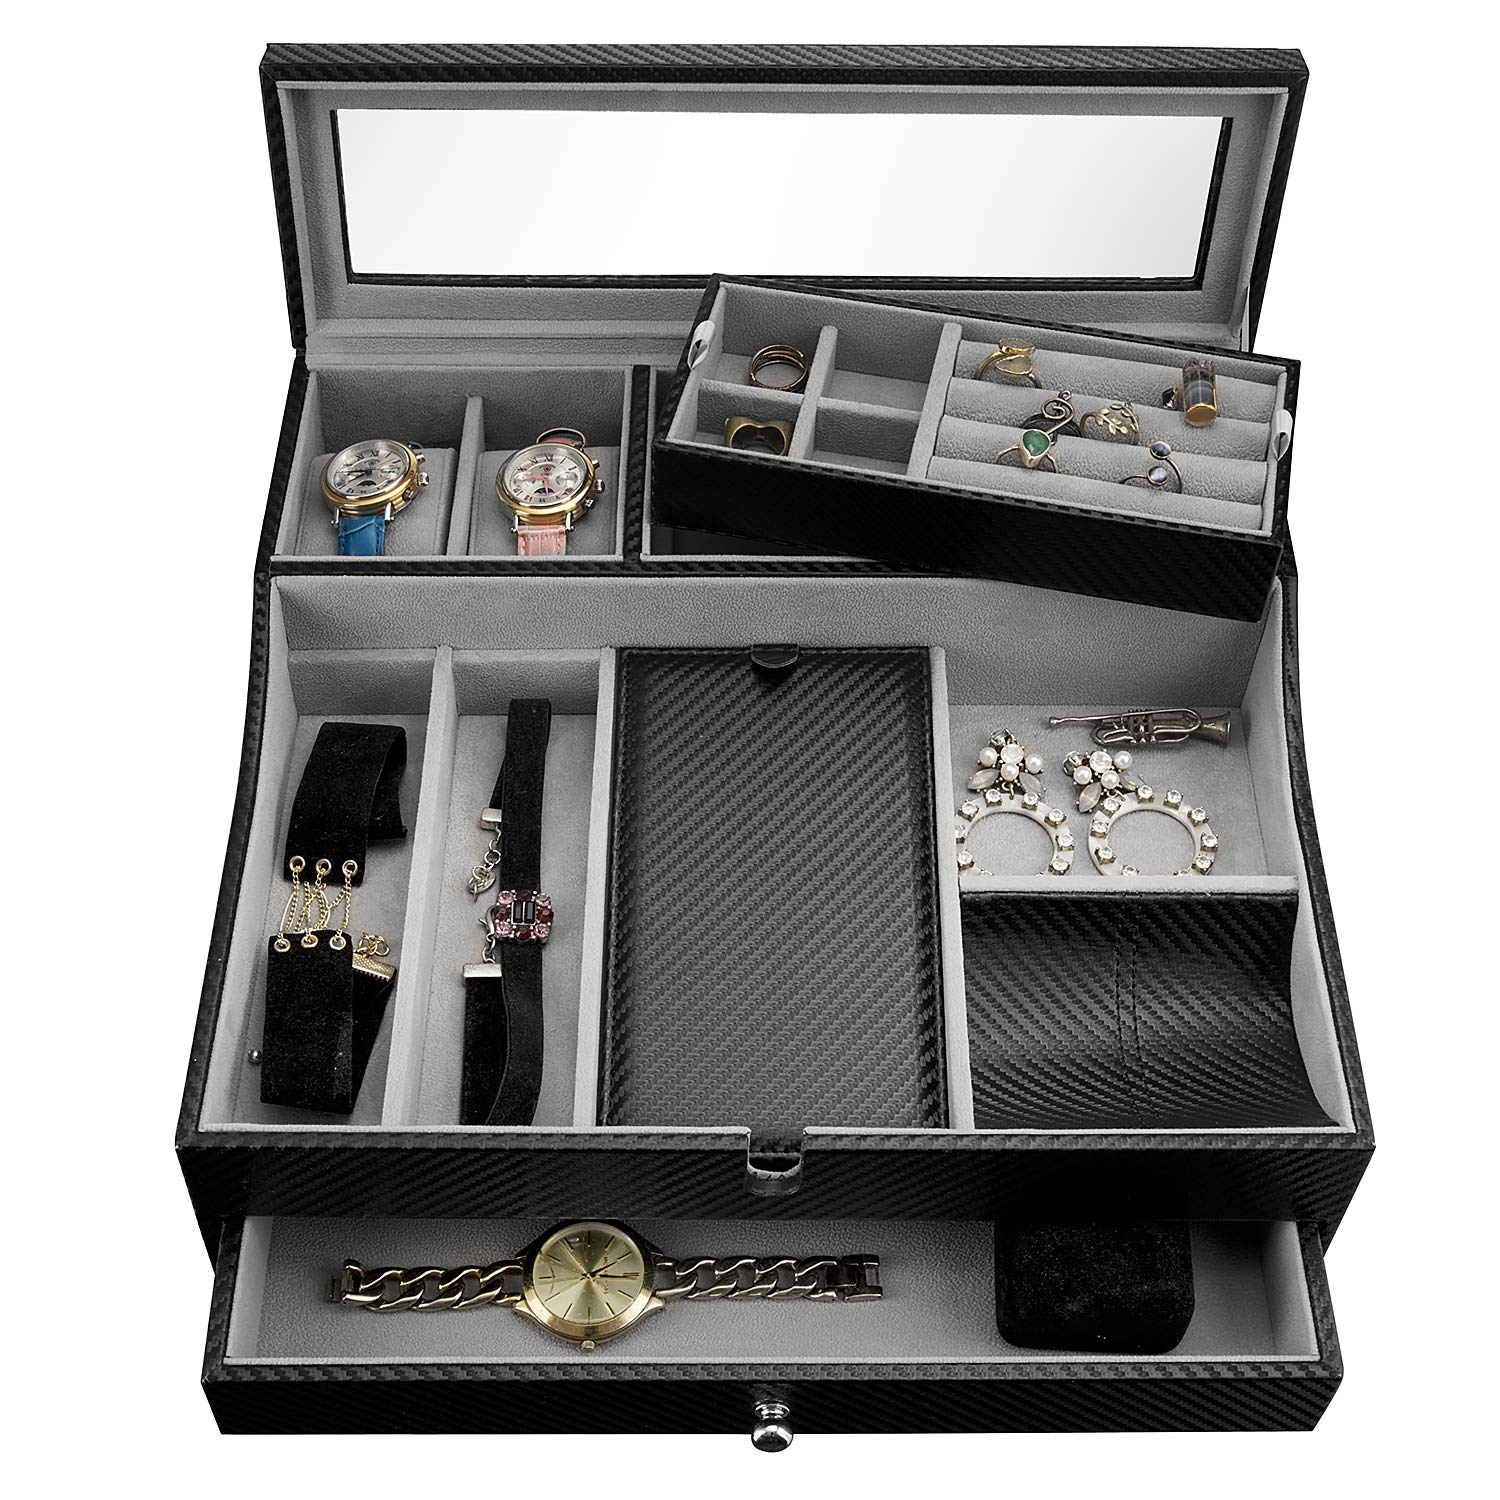 Valet Tray for Men Sleek Dresser-Organizer Box for Storage Display Perfect for Phone, Watches, Sunglasses, Jewelry, Wallet, Rings, Necklace More Carbon Fiber Faux Leather